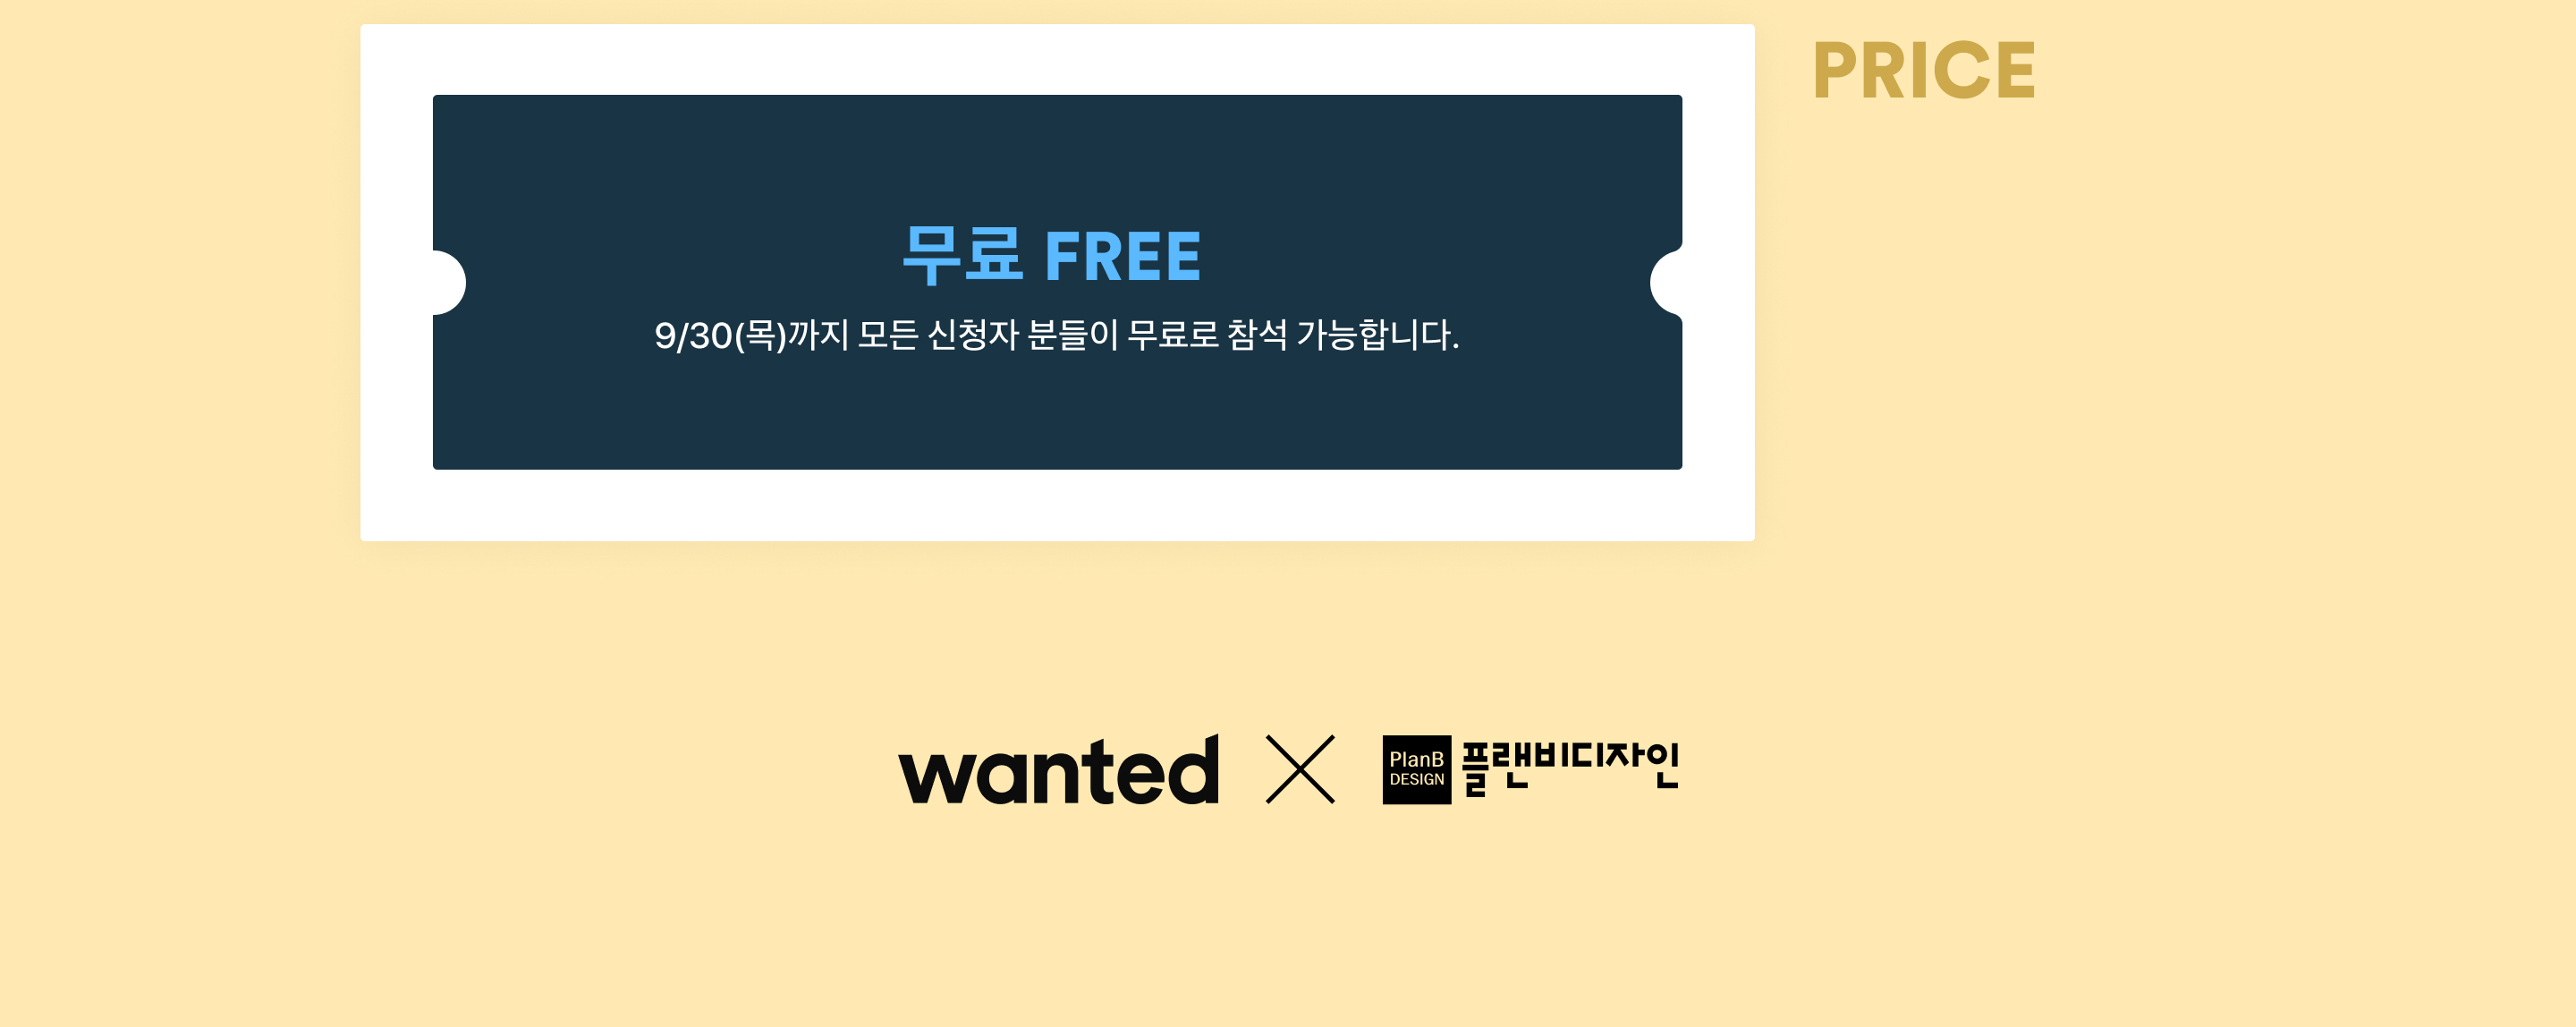 https://static.wanted.co.kr/images/events/1493/81bc0e7f.jpg